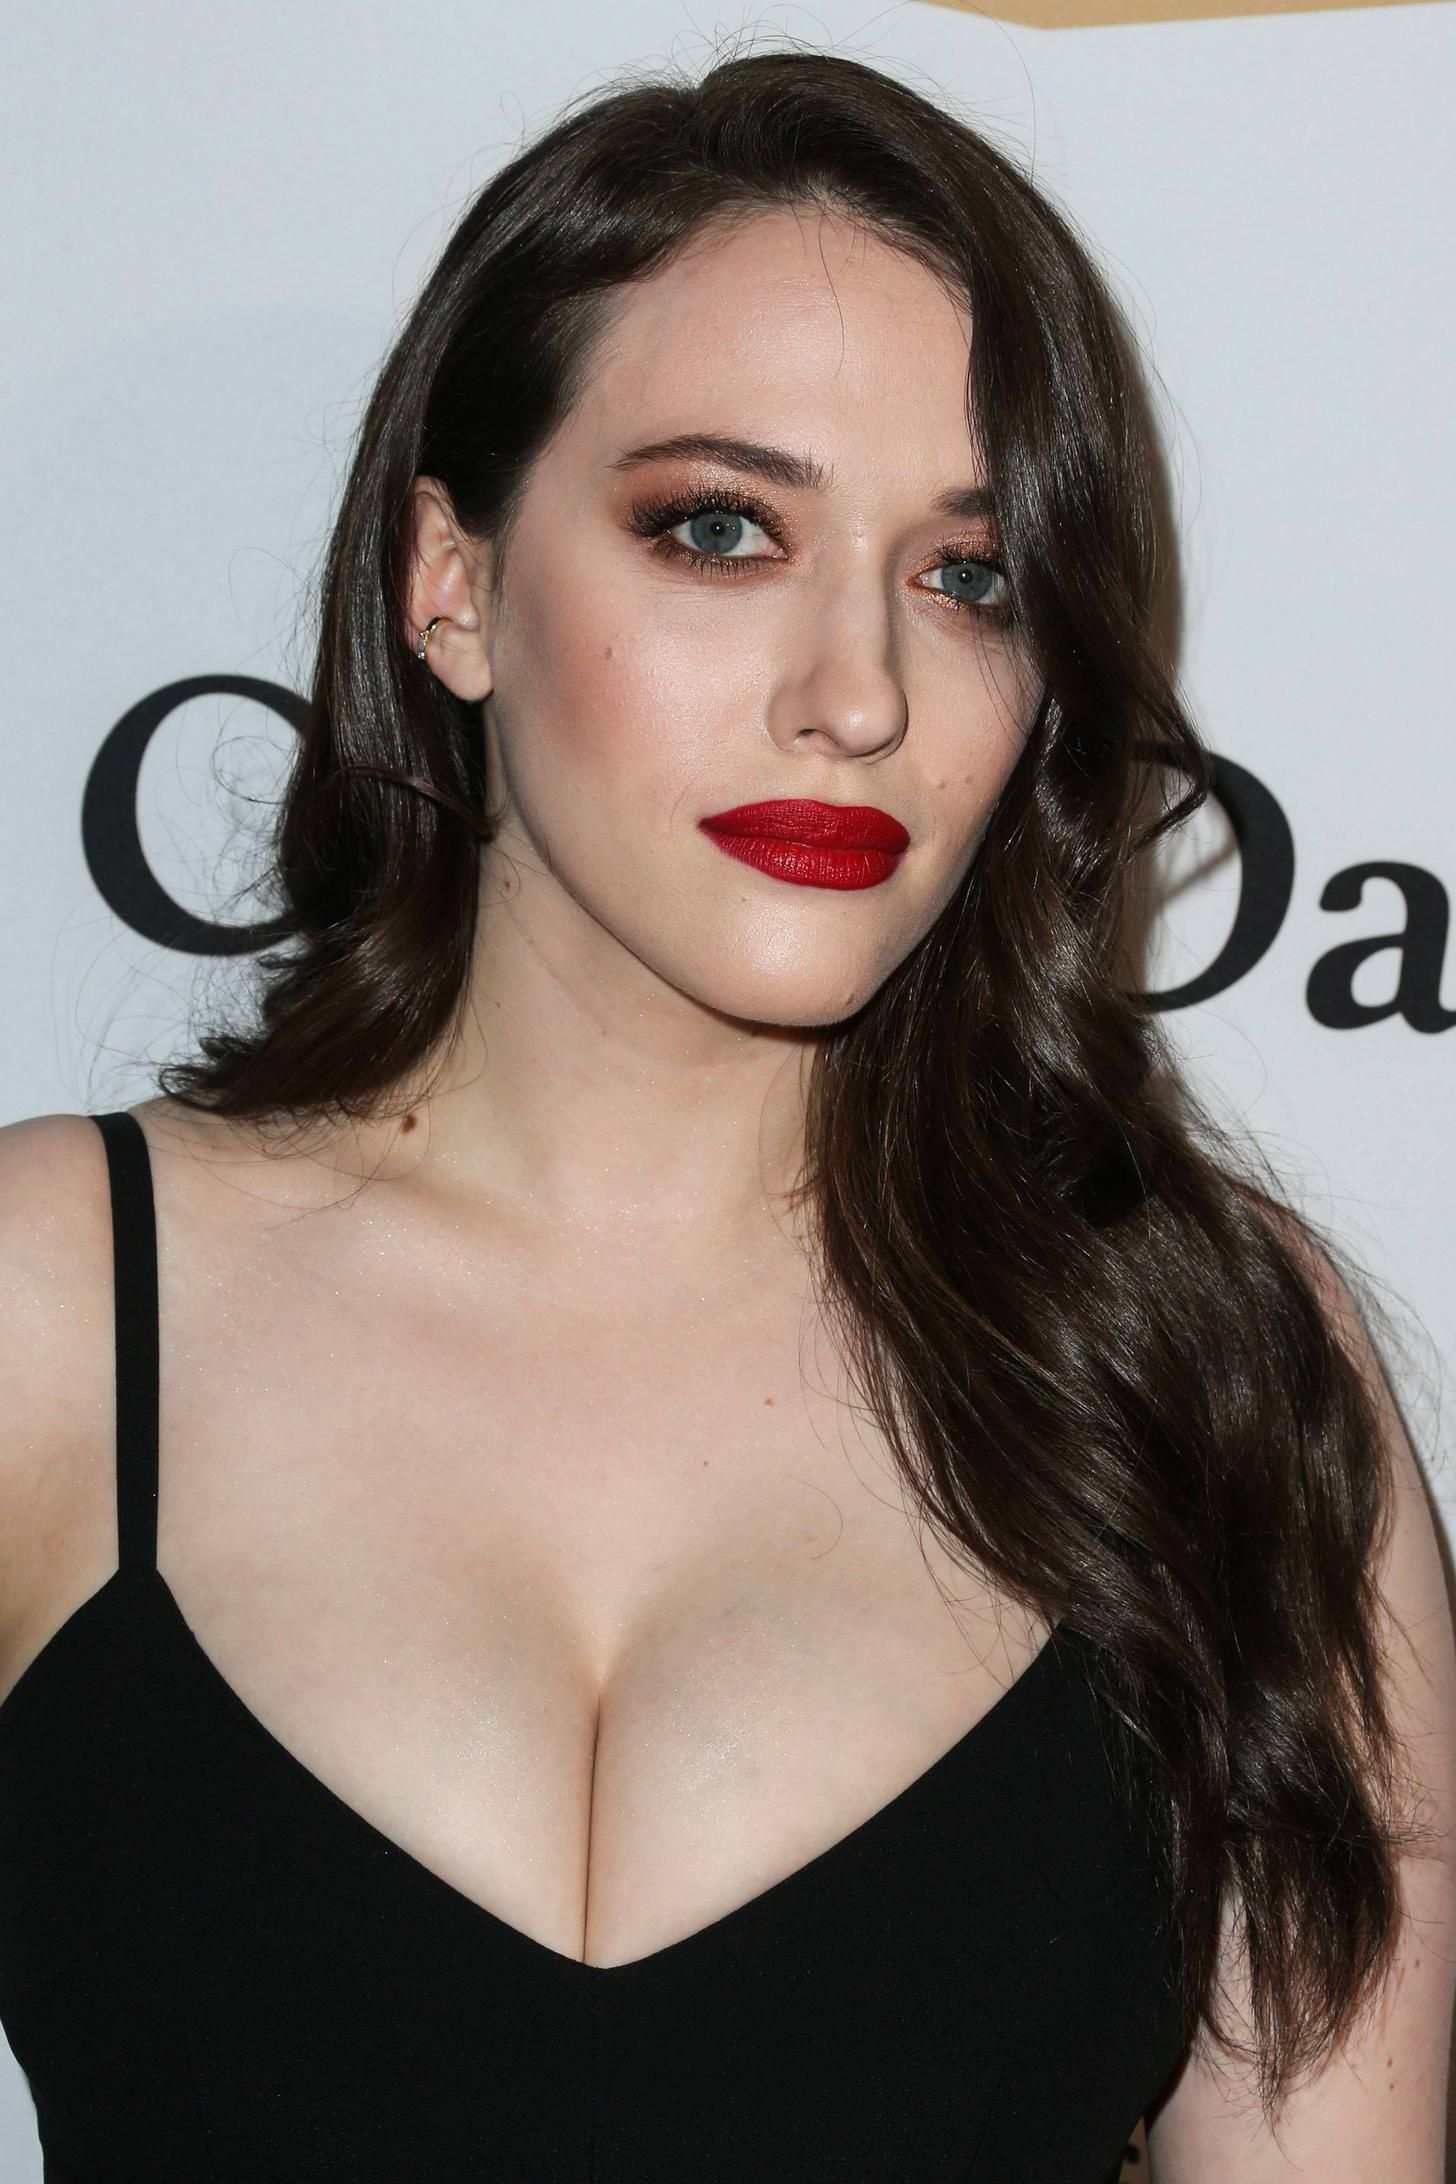 Fappening 2019 Kat Dennings naked photo 2017